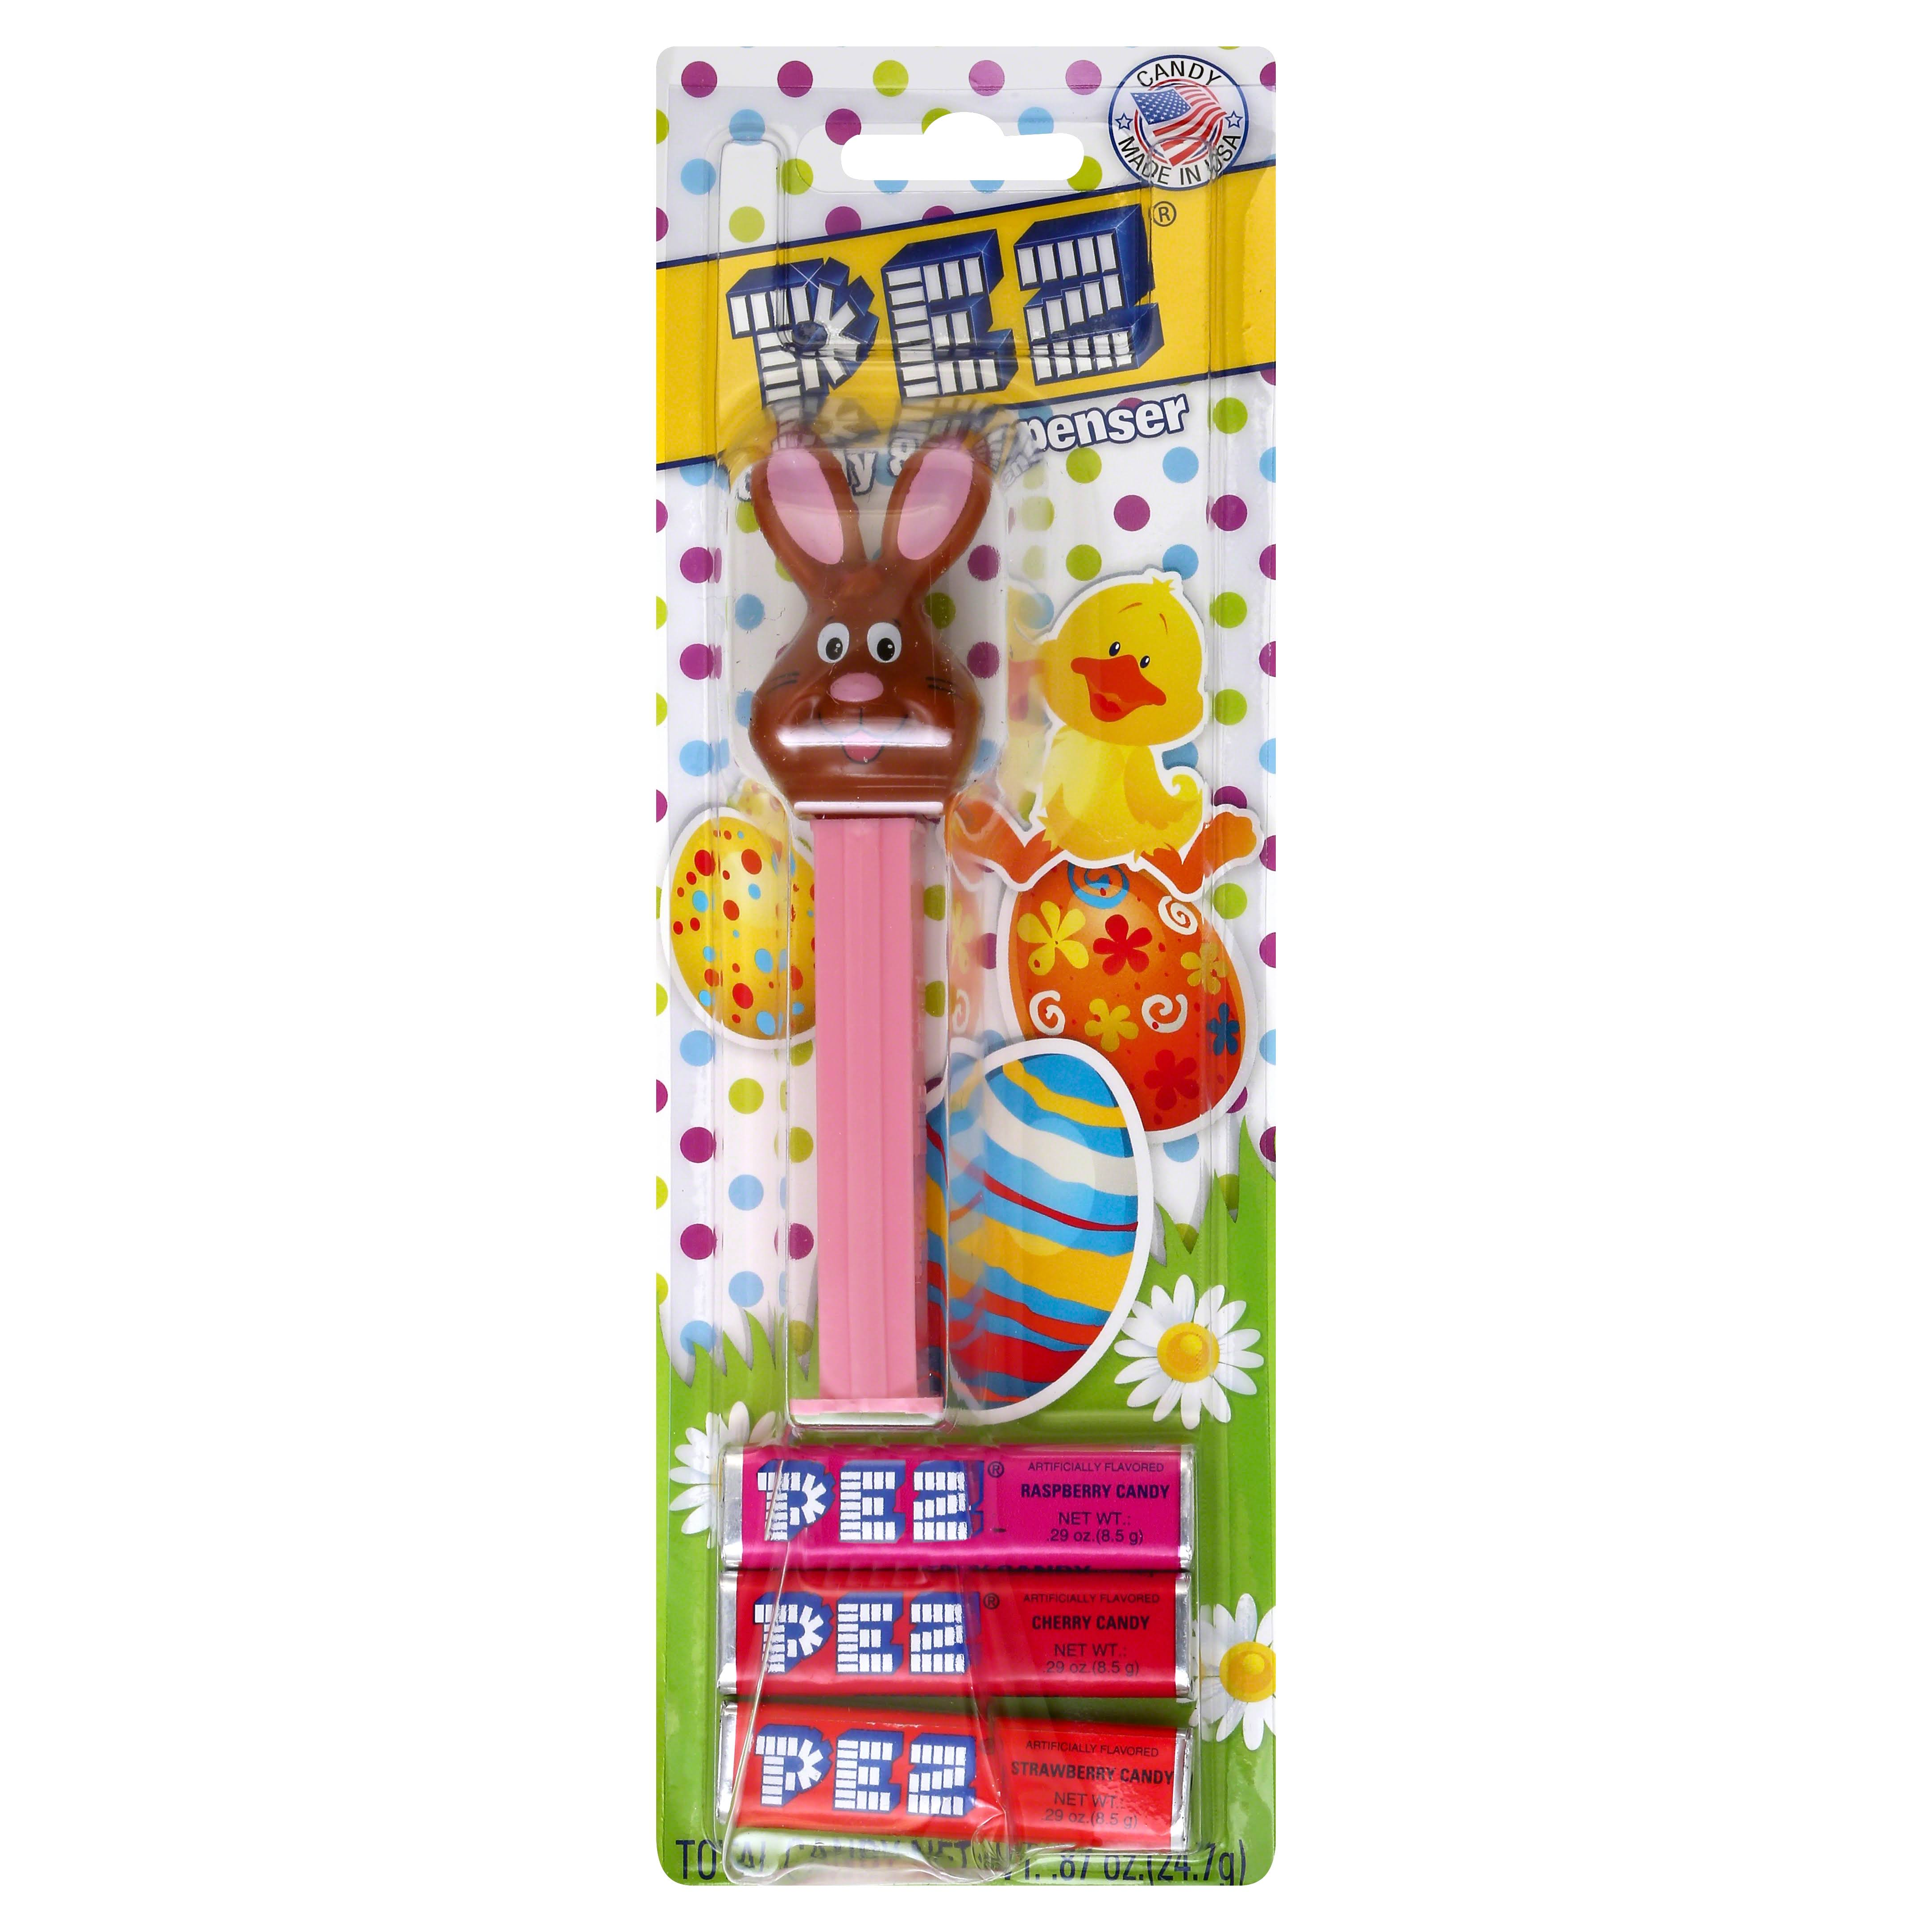 PEZ Candy & Dispenser